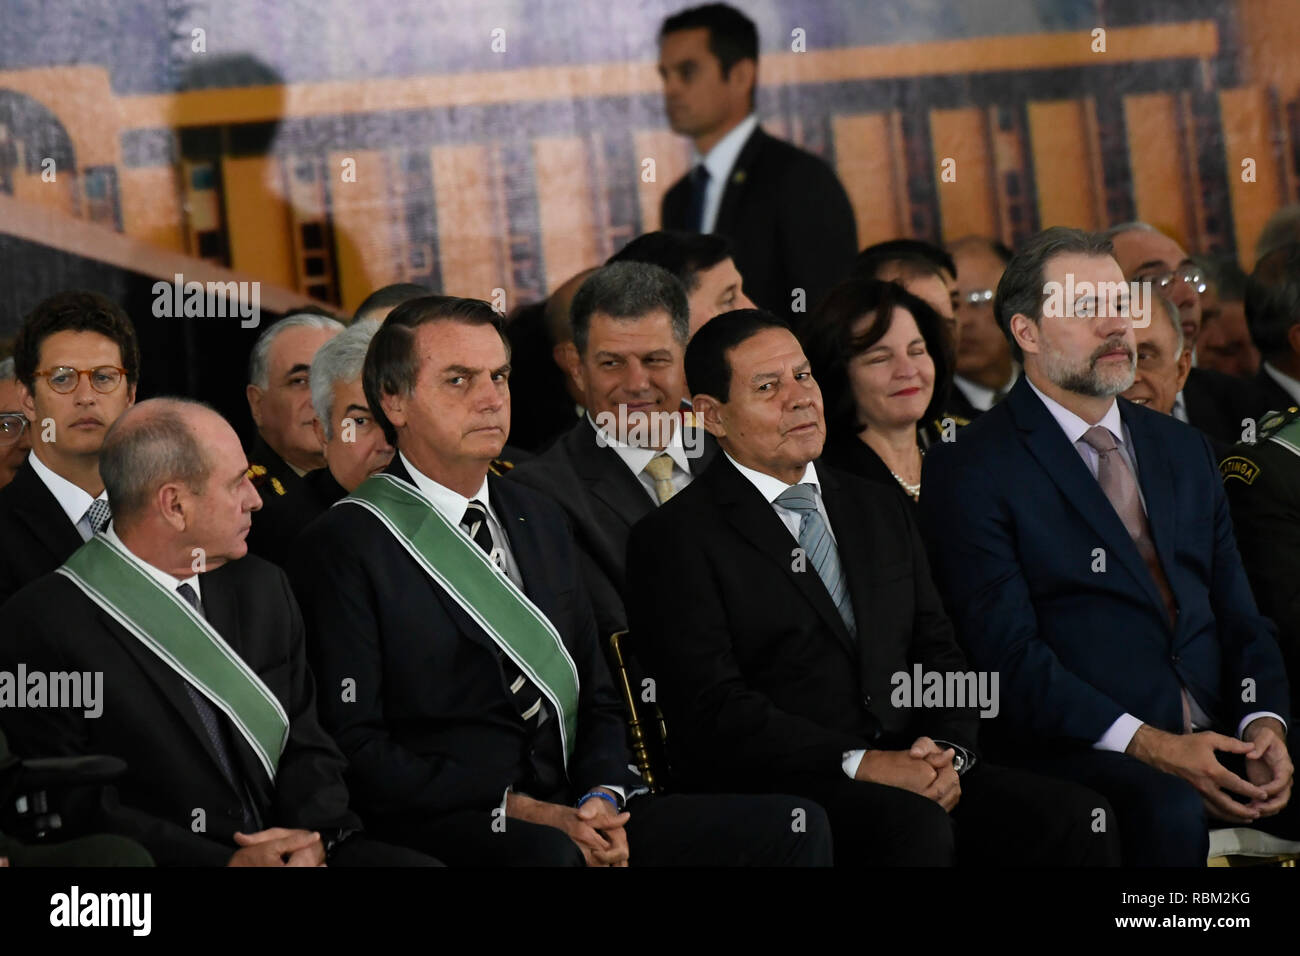 DF - Brasilia - 10/01/2019 - Possession of the Army General Commander - Jair Bolsonaro, President of the Republic, accompanied by General Eduardo Dias da Costa Villas Boas, Fernando Azevedo e Silva, Minister of Defense, and Hamilton Mourao, Vice President of republica, this Friday, January 11, during a solemnity of passage from the general command of the army of General Eduardo Dias da Costa Army Villas Boas to Army General Edson Leal Pujol in a ceremony held in the Club of the Army. Photo: Mateus Bonomi / AGIF - Stock Image